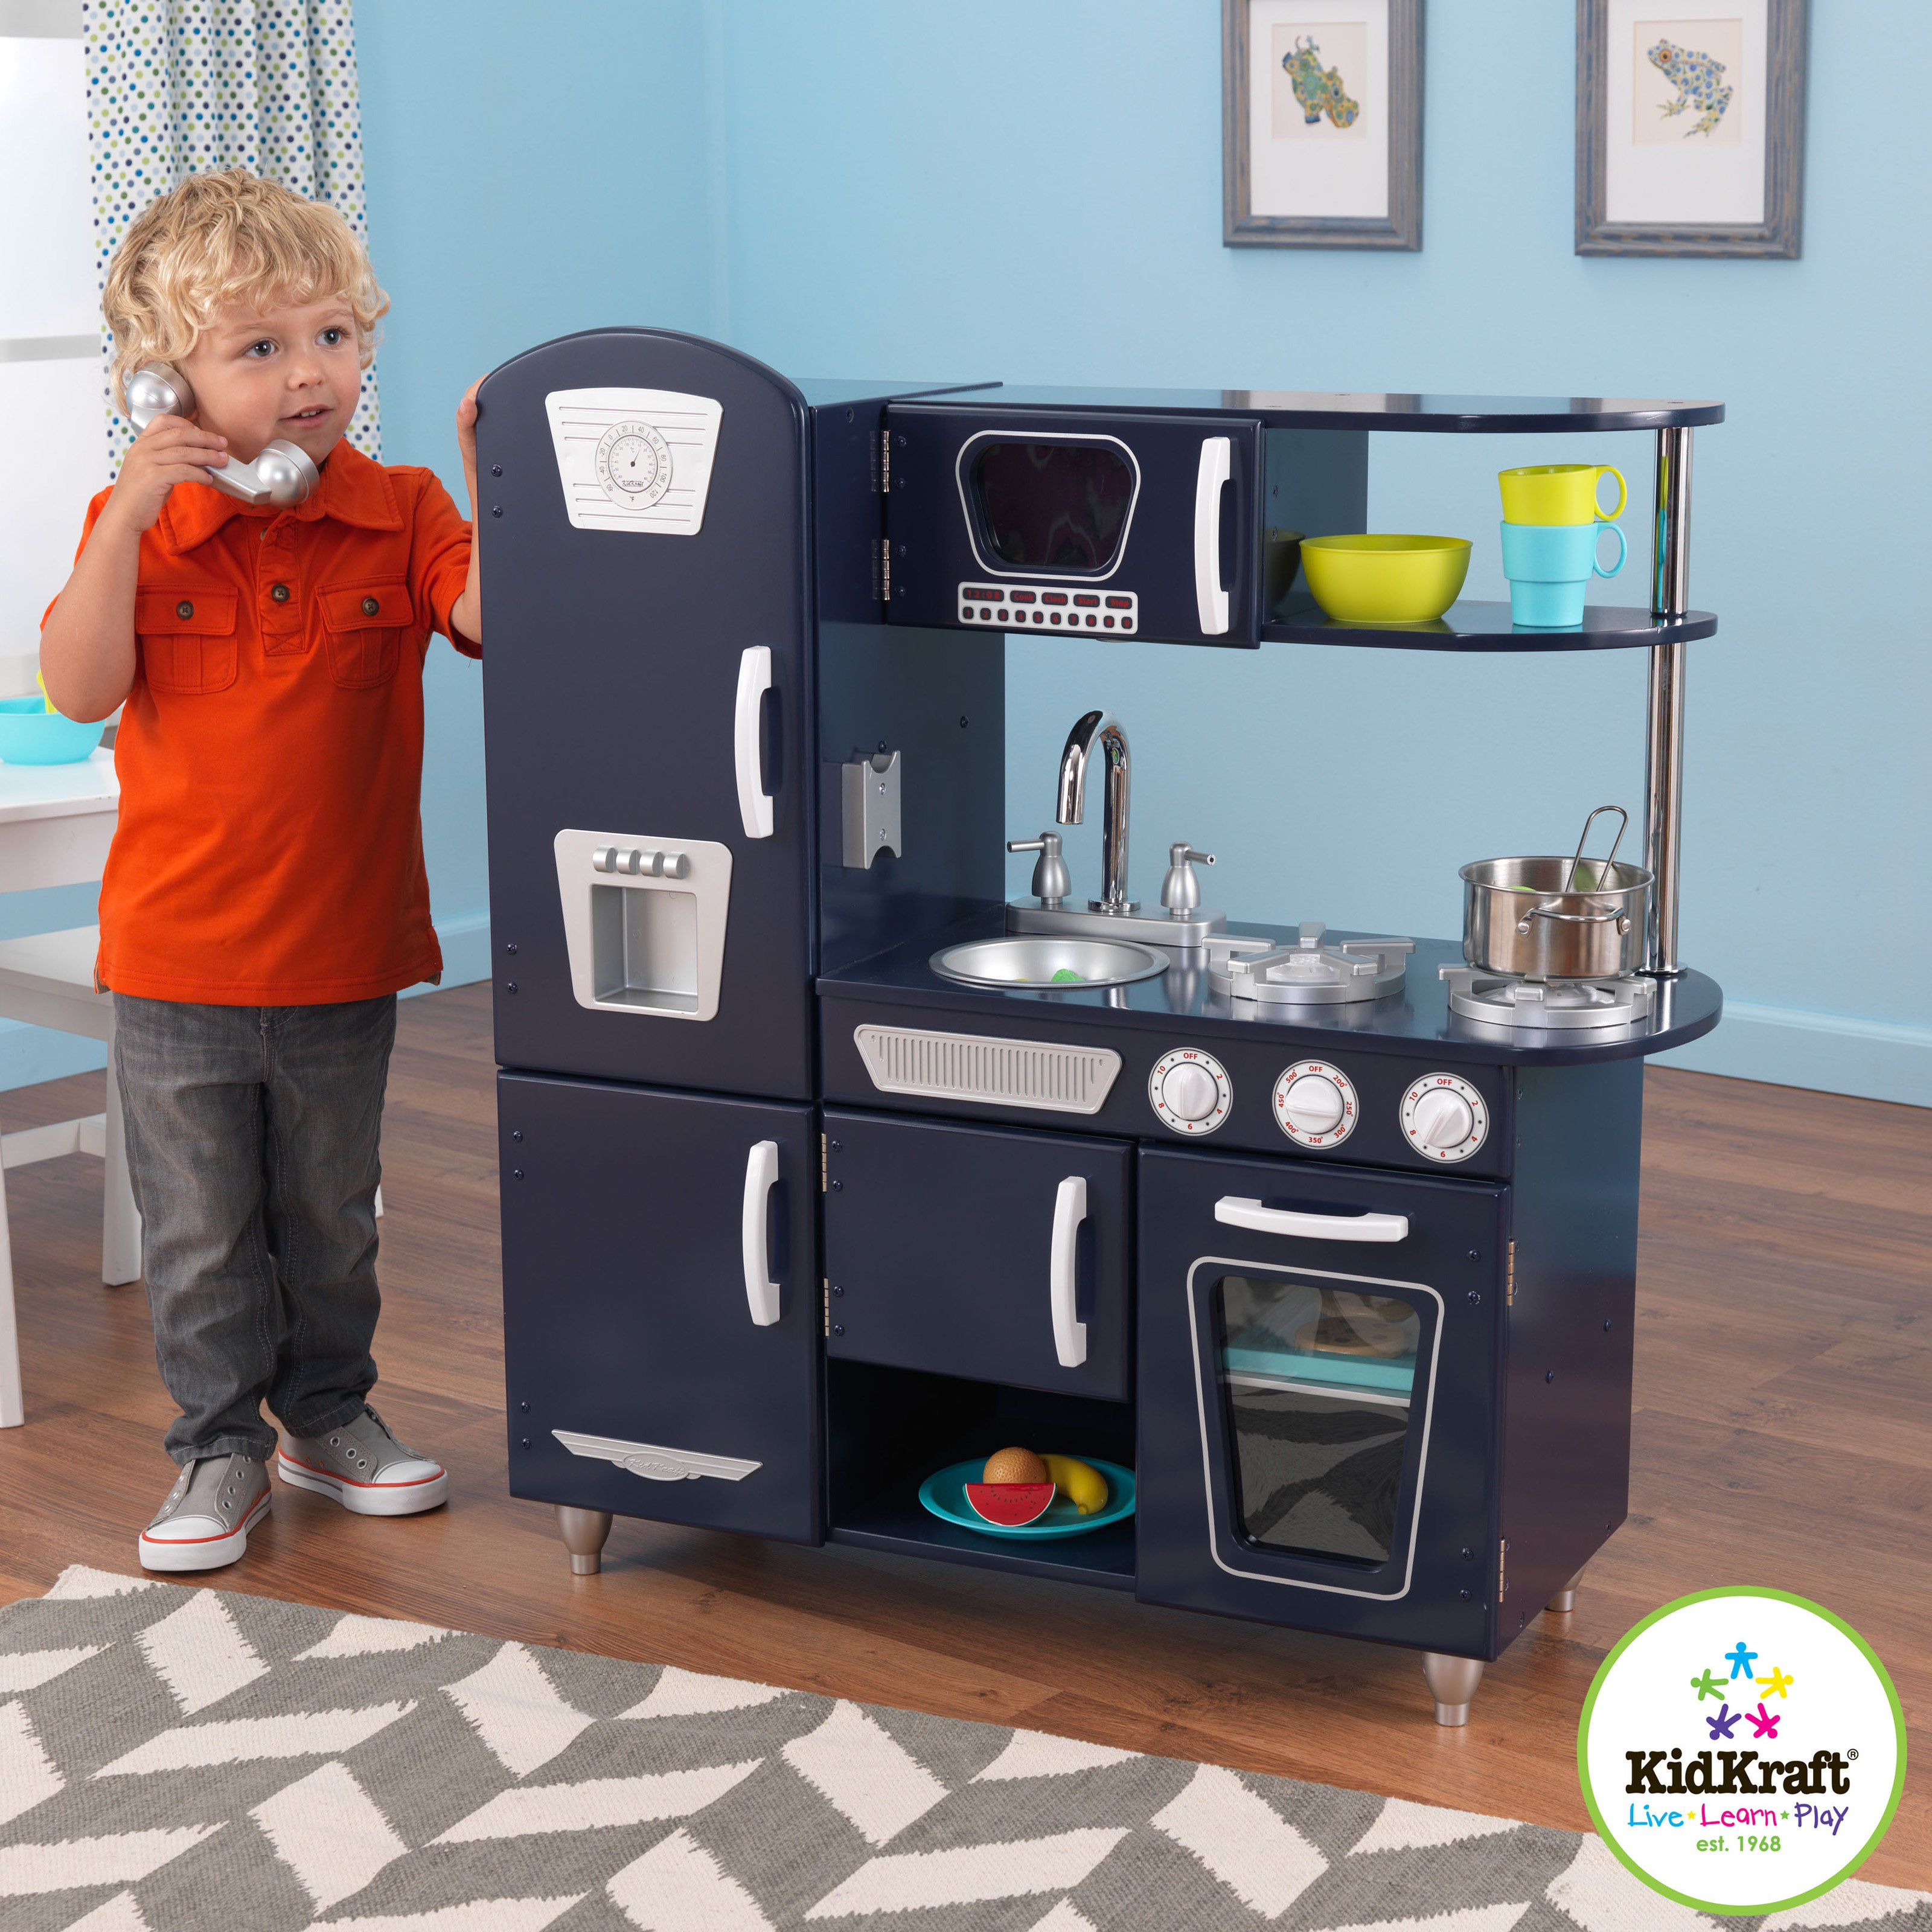 kidkraft vintage wooden play kitchen set, navy - walmart